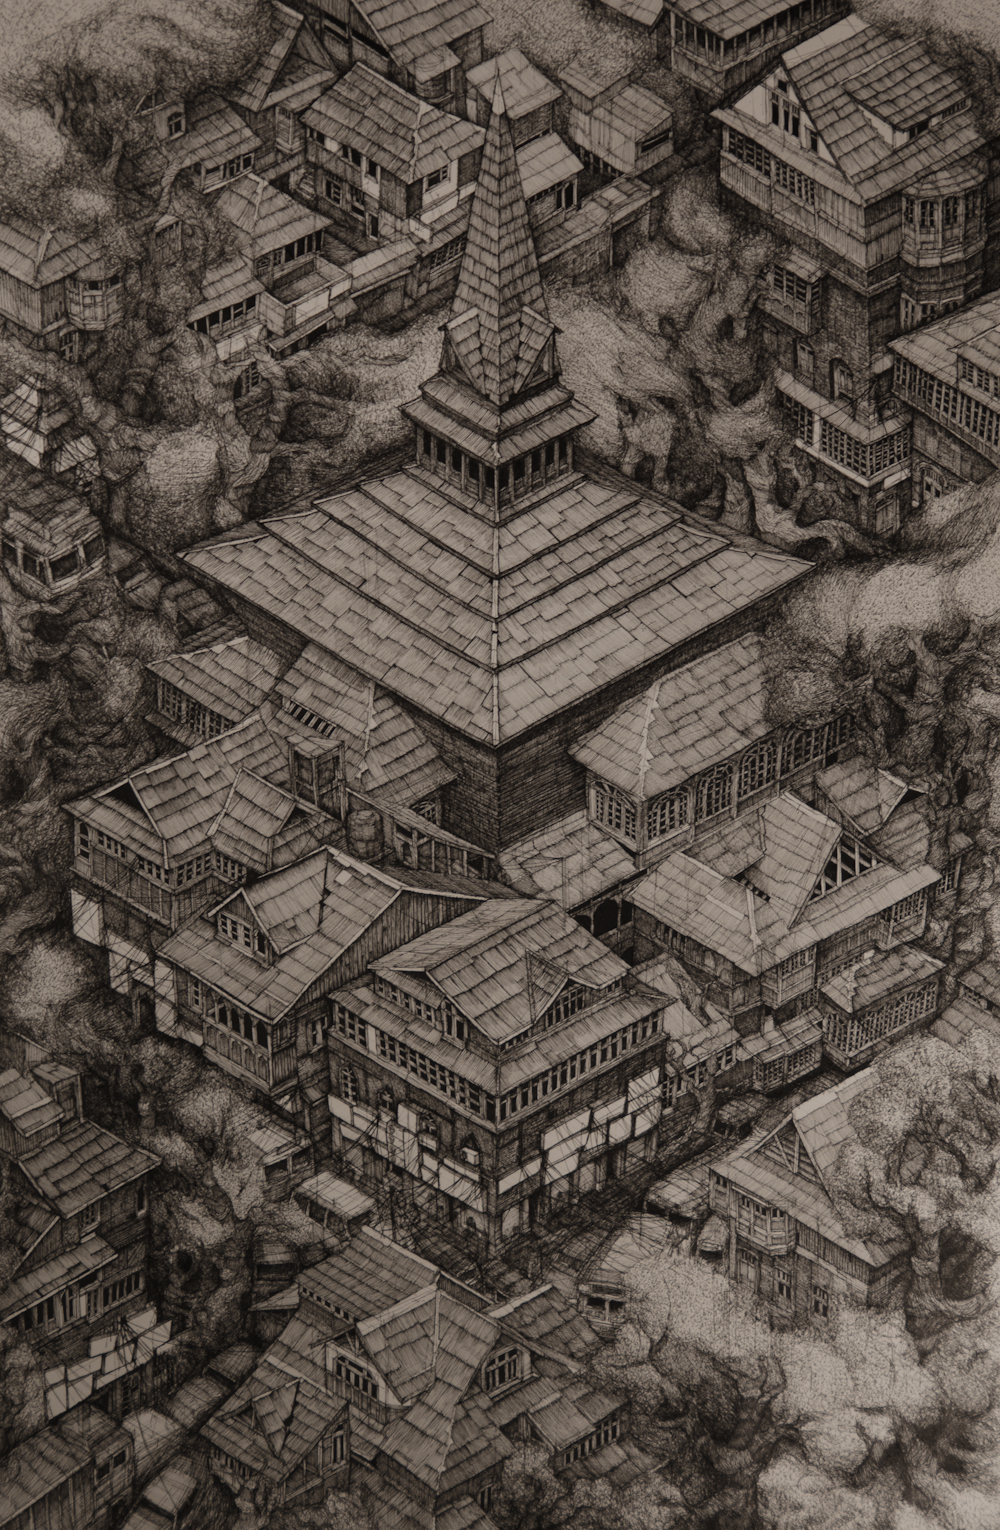 17-Srinagar-Kashmir-Evan-Wakelin-Architectural-Drawings-in-Isometric-Projection-www-designstack-co